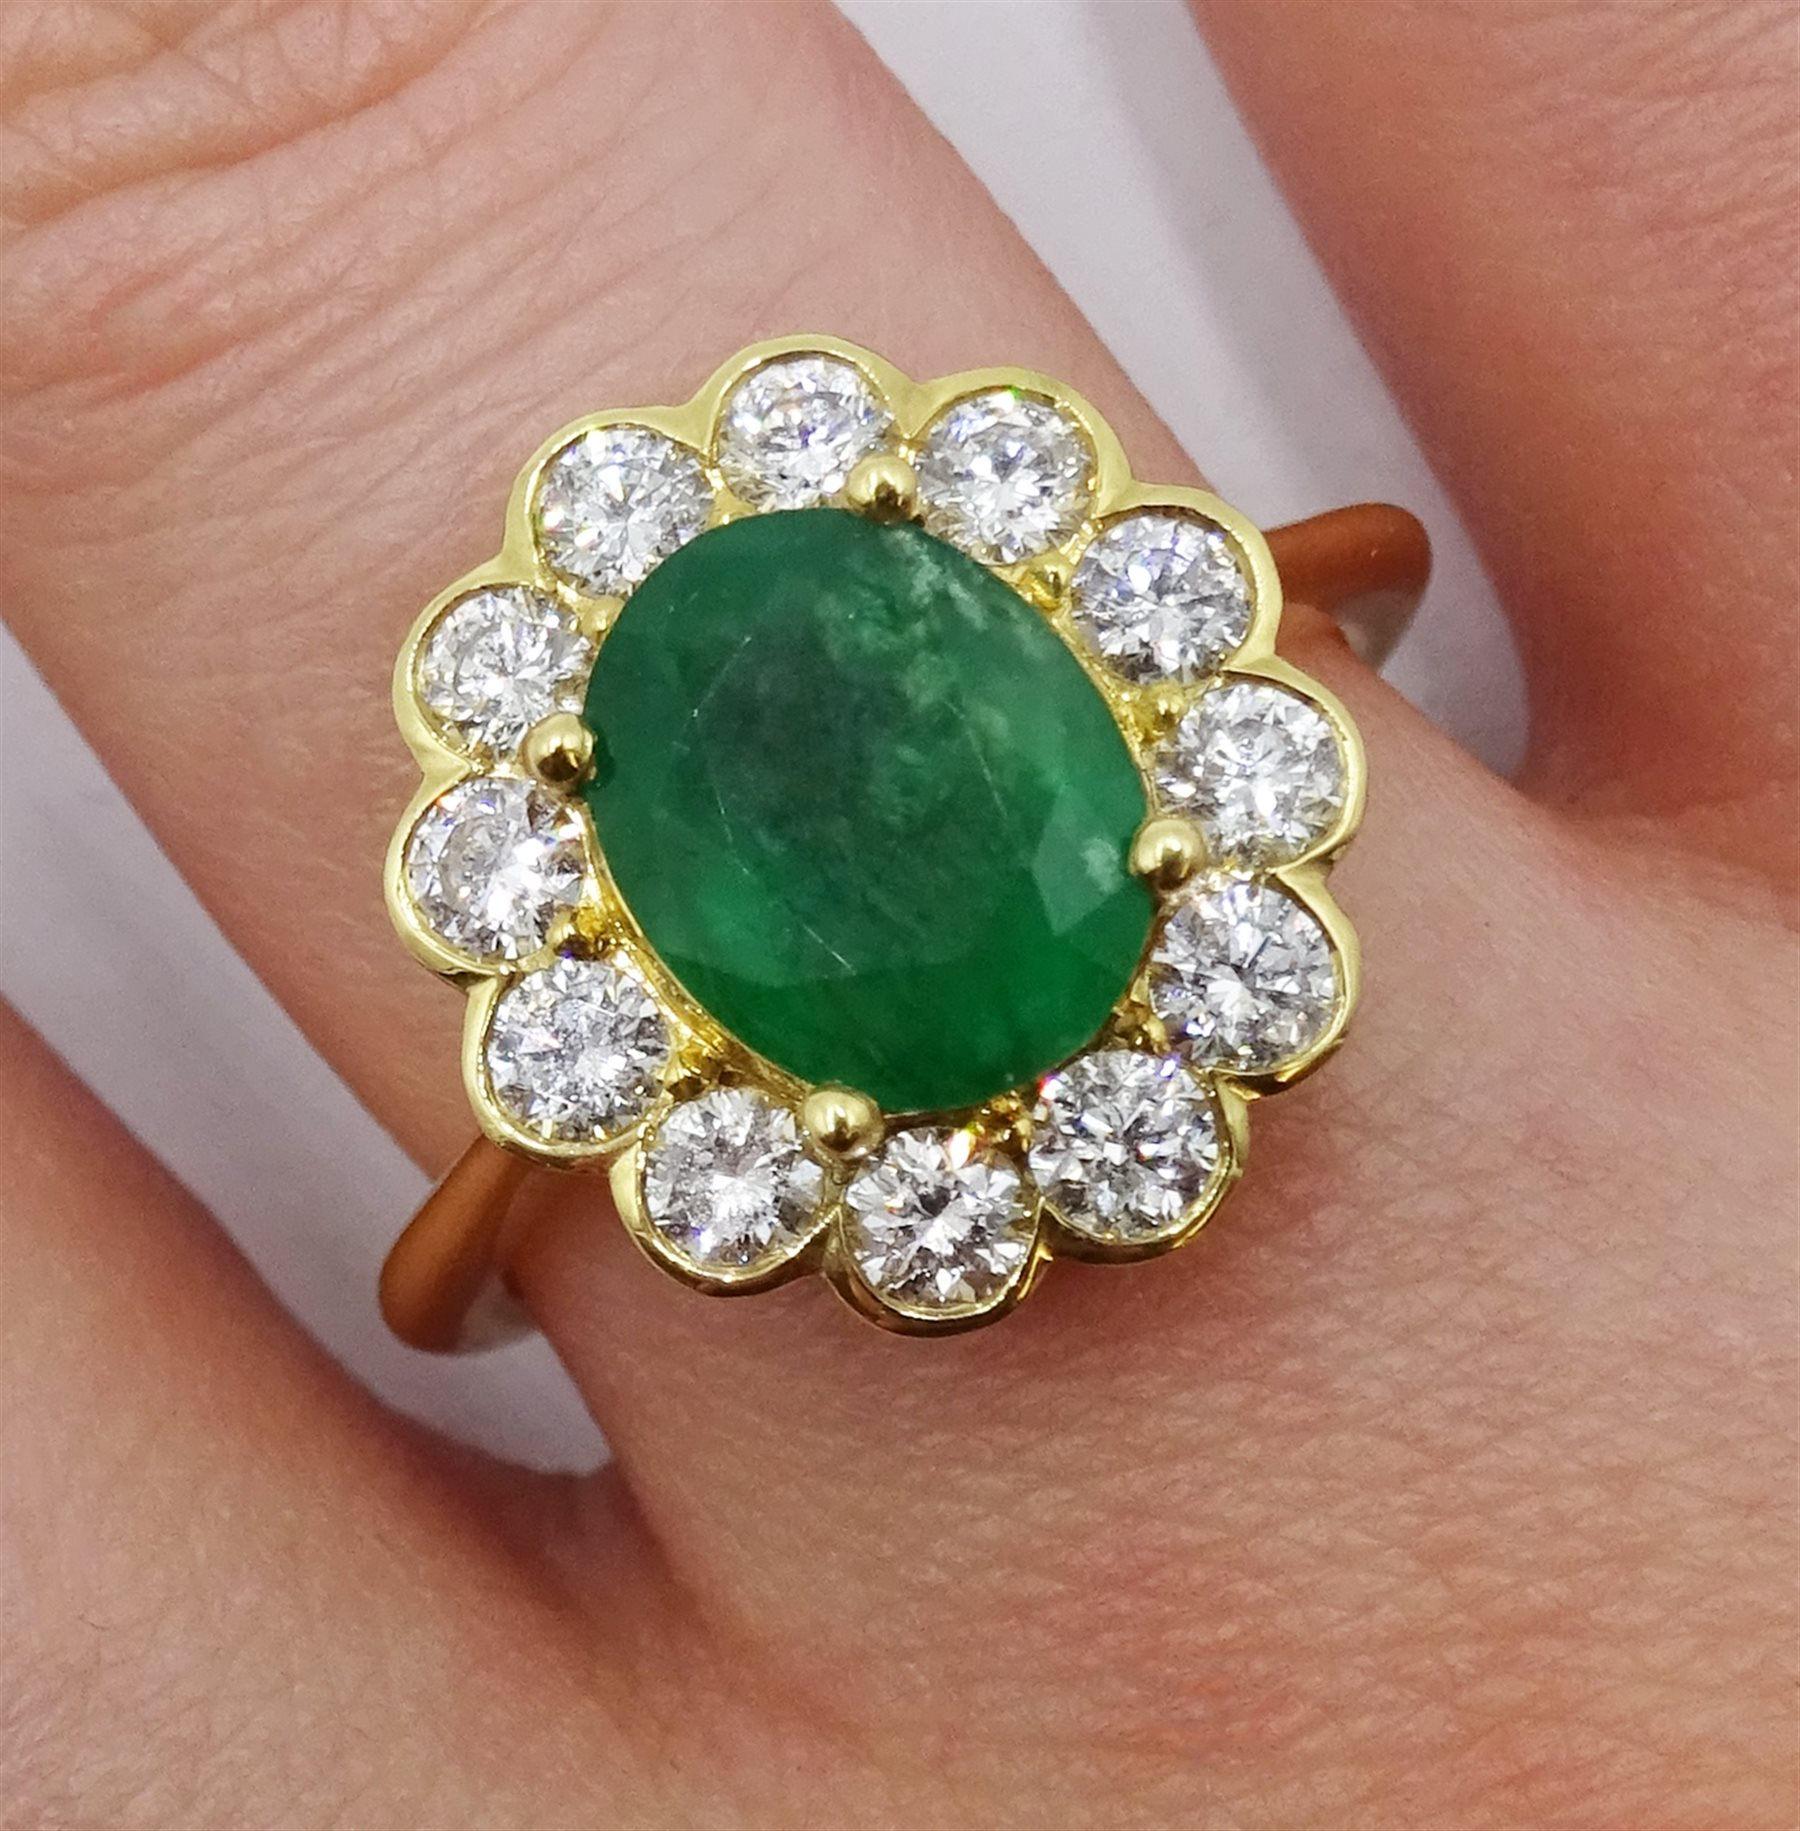 18ct gold oval emerald and diamond cluster ring - Image 2 of 5